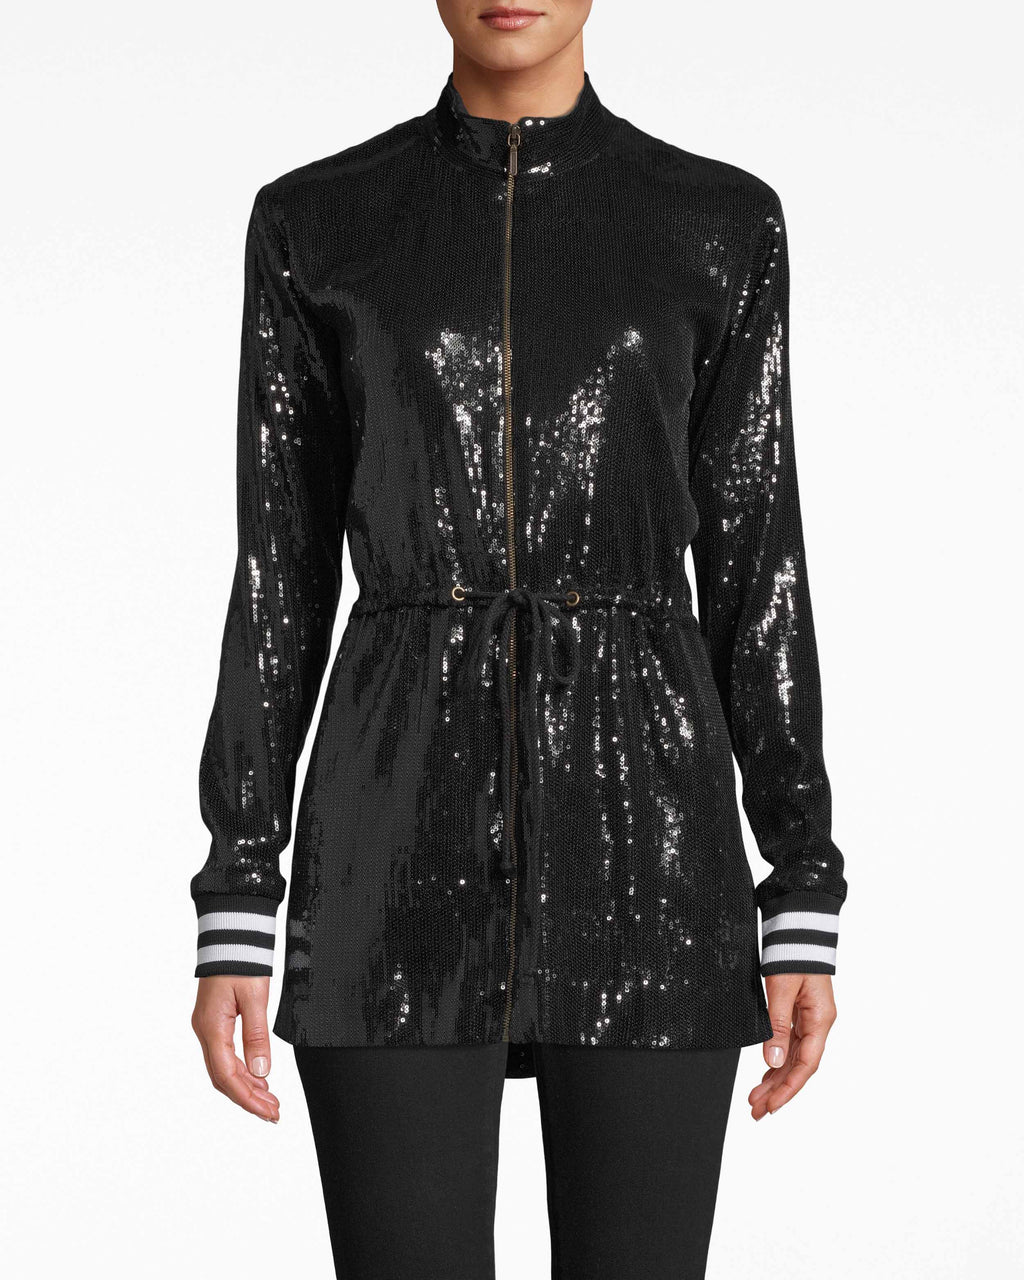 BP20036 - DRAWSTRING JACKET - outerwear - jackets - Cinched at the wrist with a subtle drawstring, this luminous jacket is a bold option for bracing colder temps. The sequins are laid all over the body, up until the black and white-striped rib cuffs. Pair with simple bottoms.